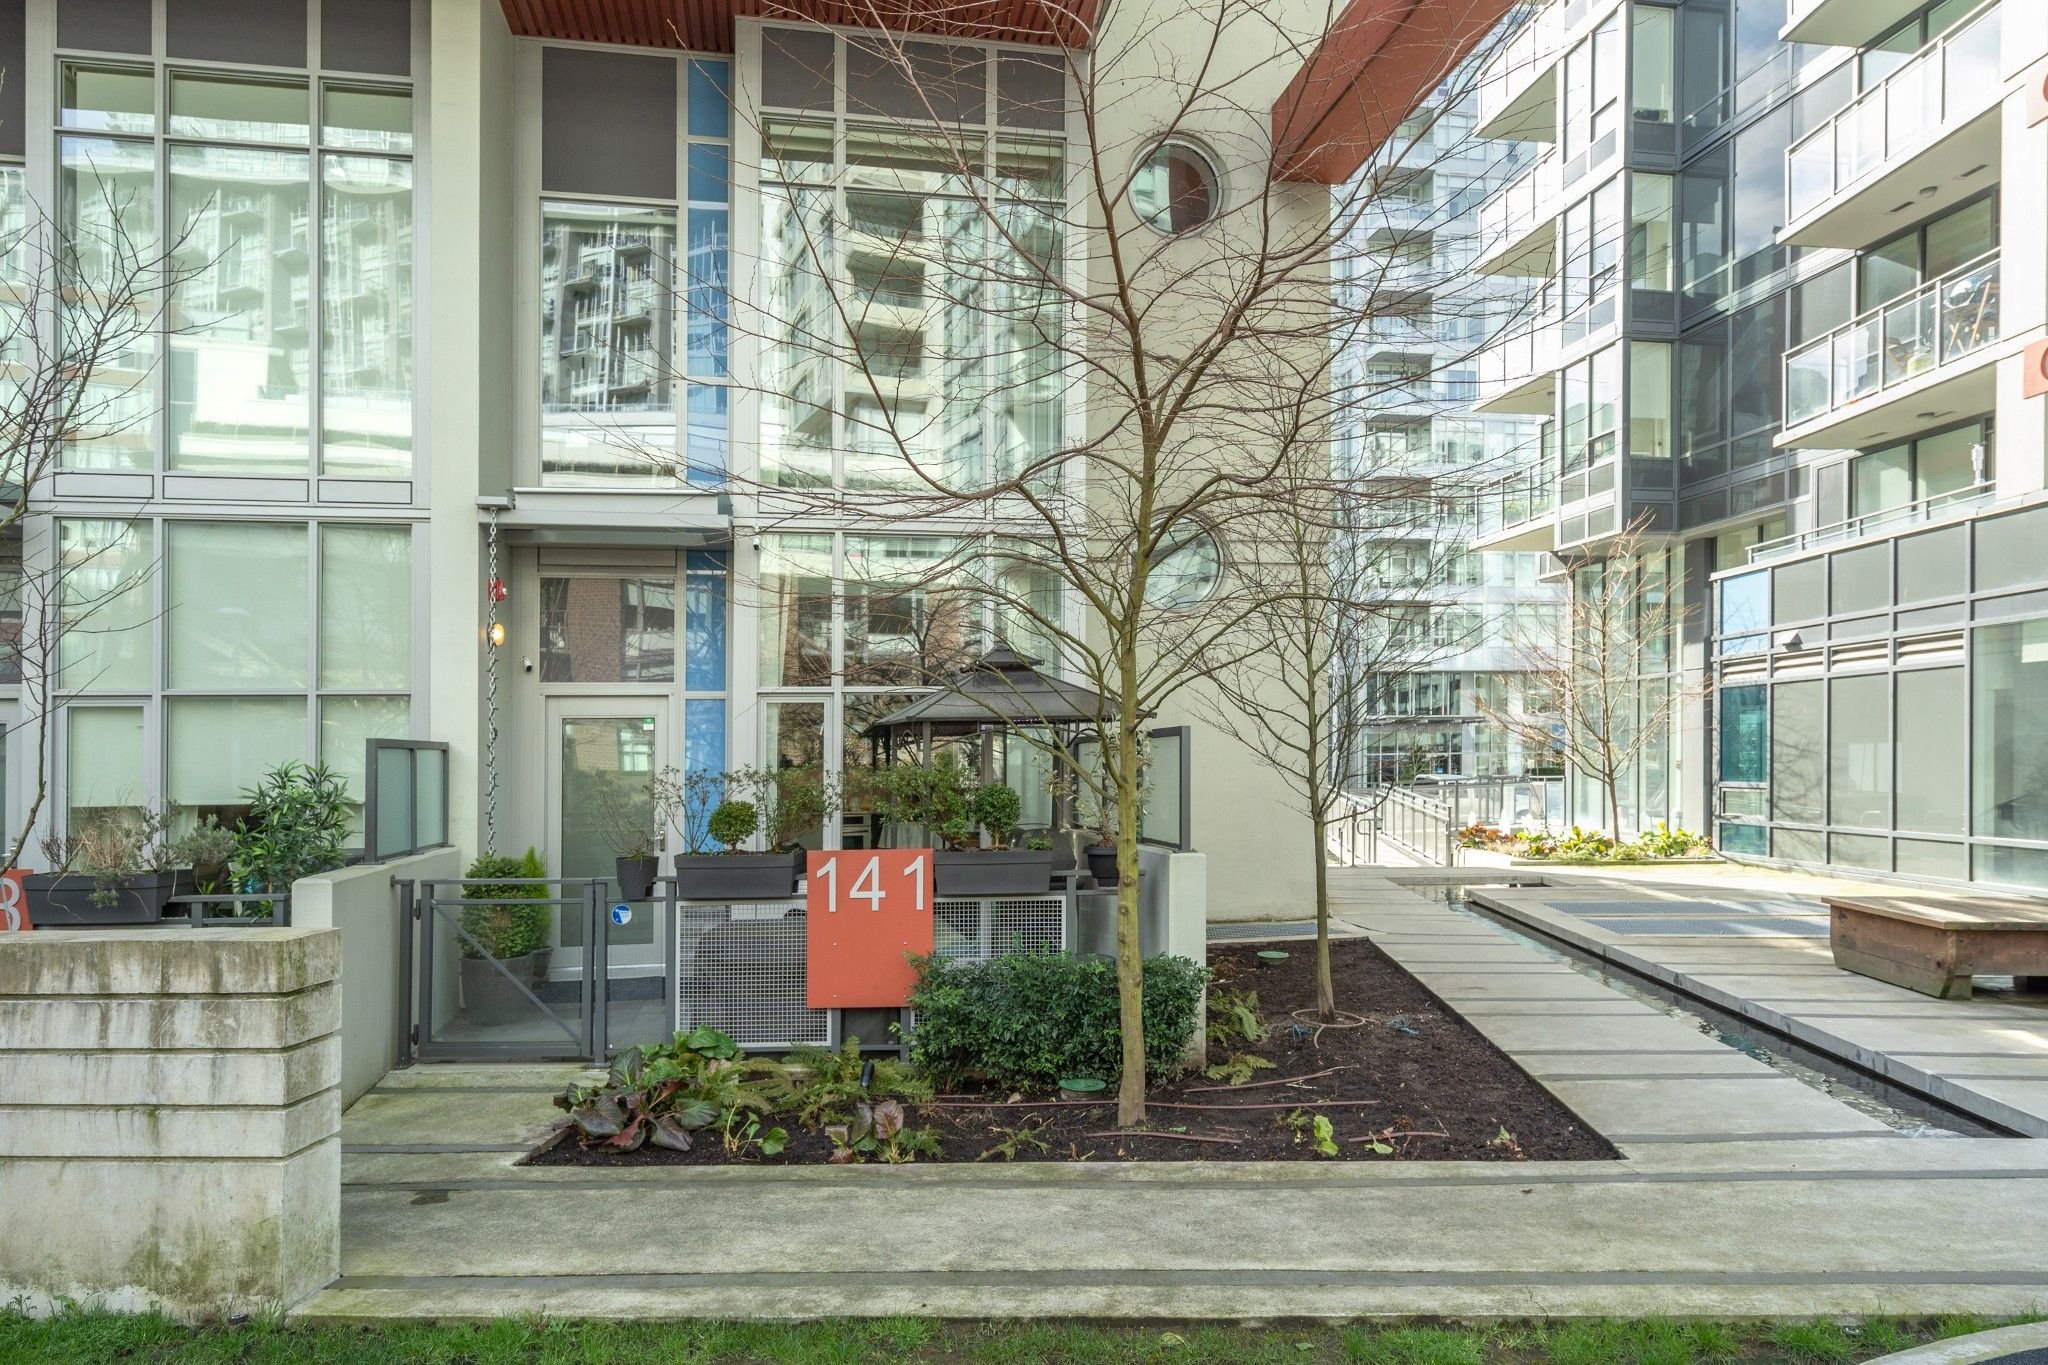 "Main Photo: 141 E 1ST Avenue in Vancouver: Mount Pleasant VE Townhouse for sale in ""Block 100"" (Vancouver East)  : MLS®# R2440709"